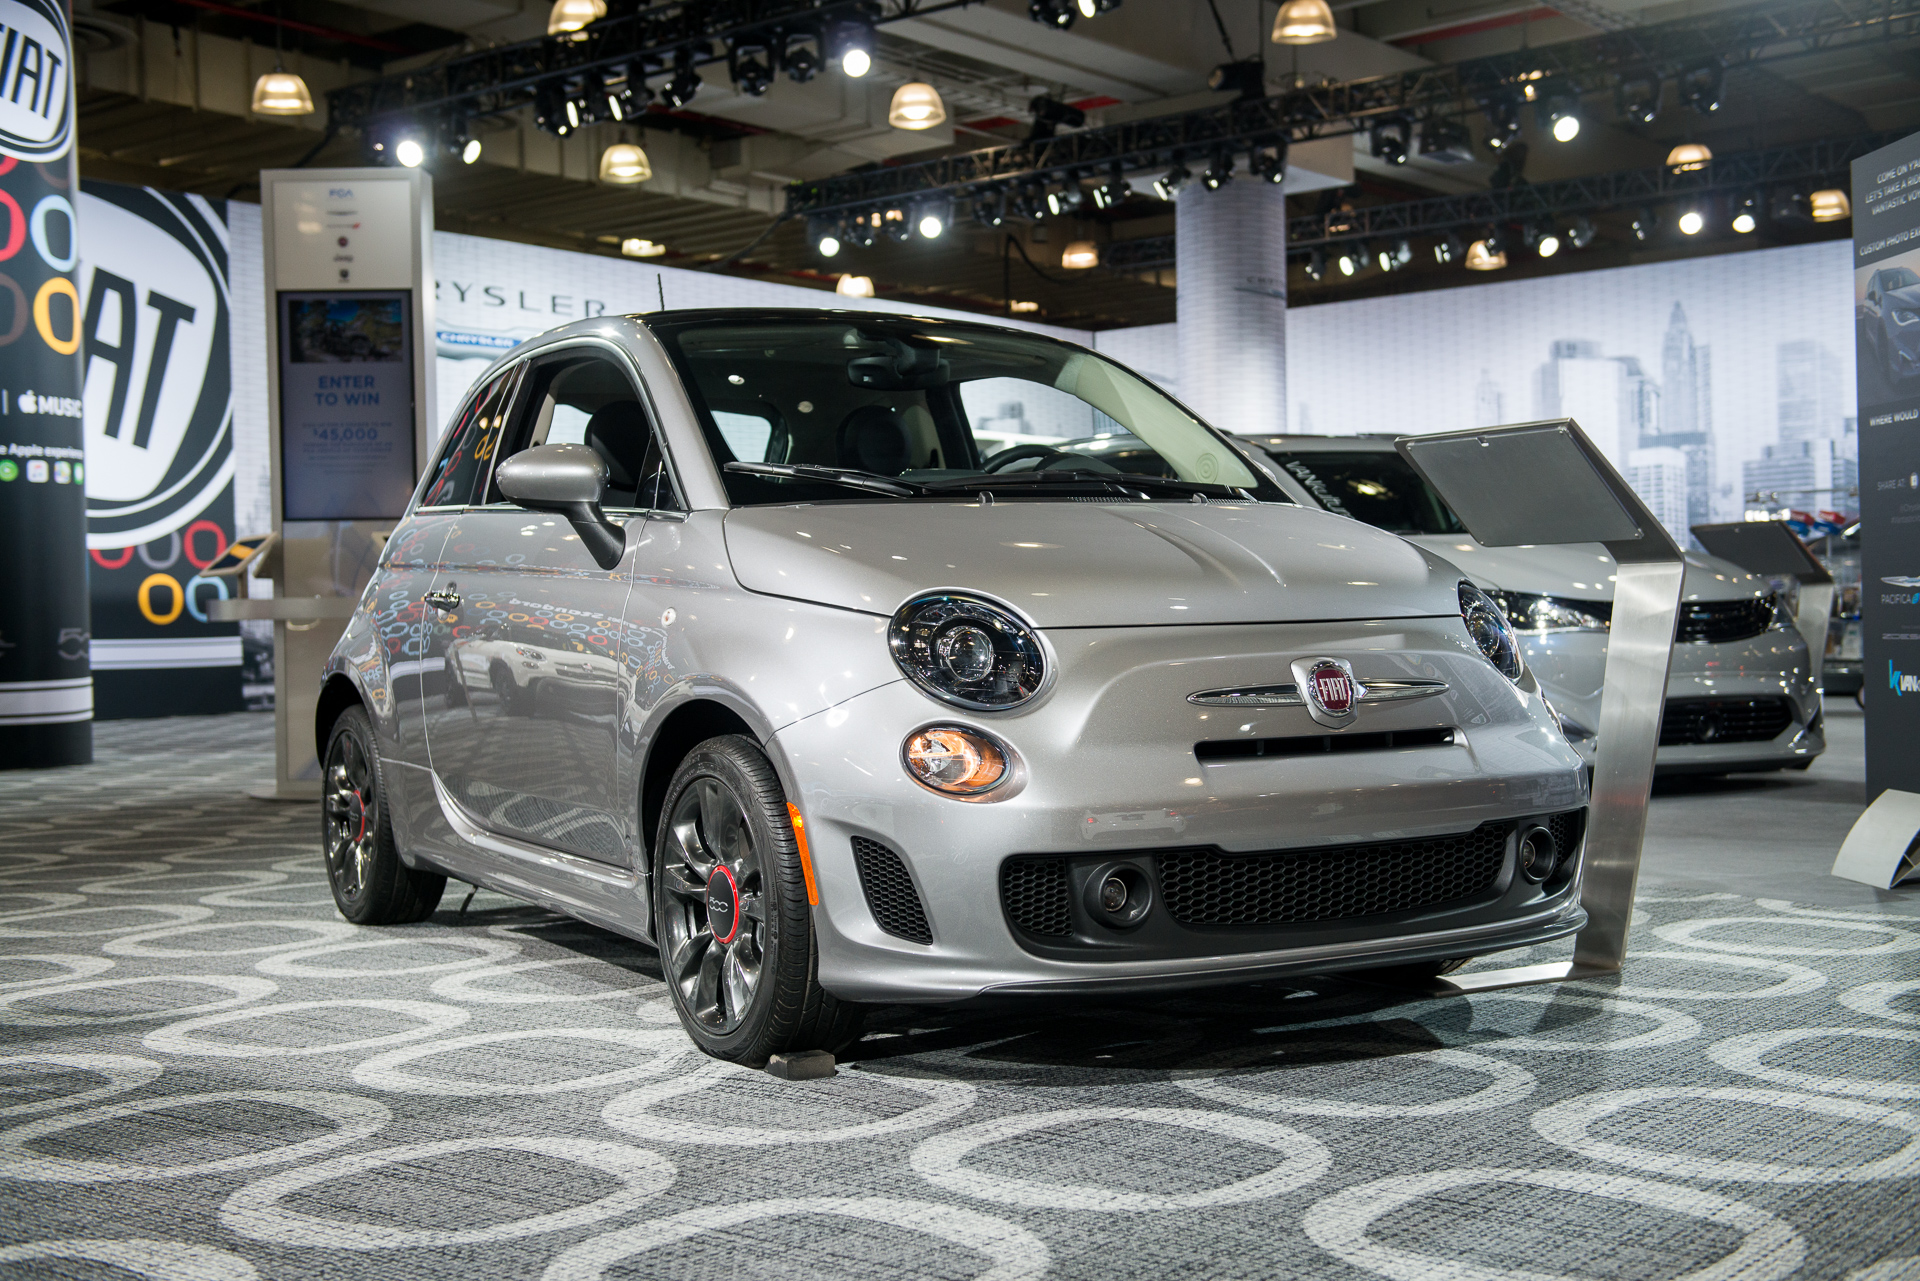 urbana price why not car because increase small fiat gets news edition